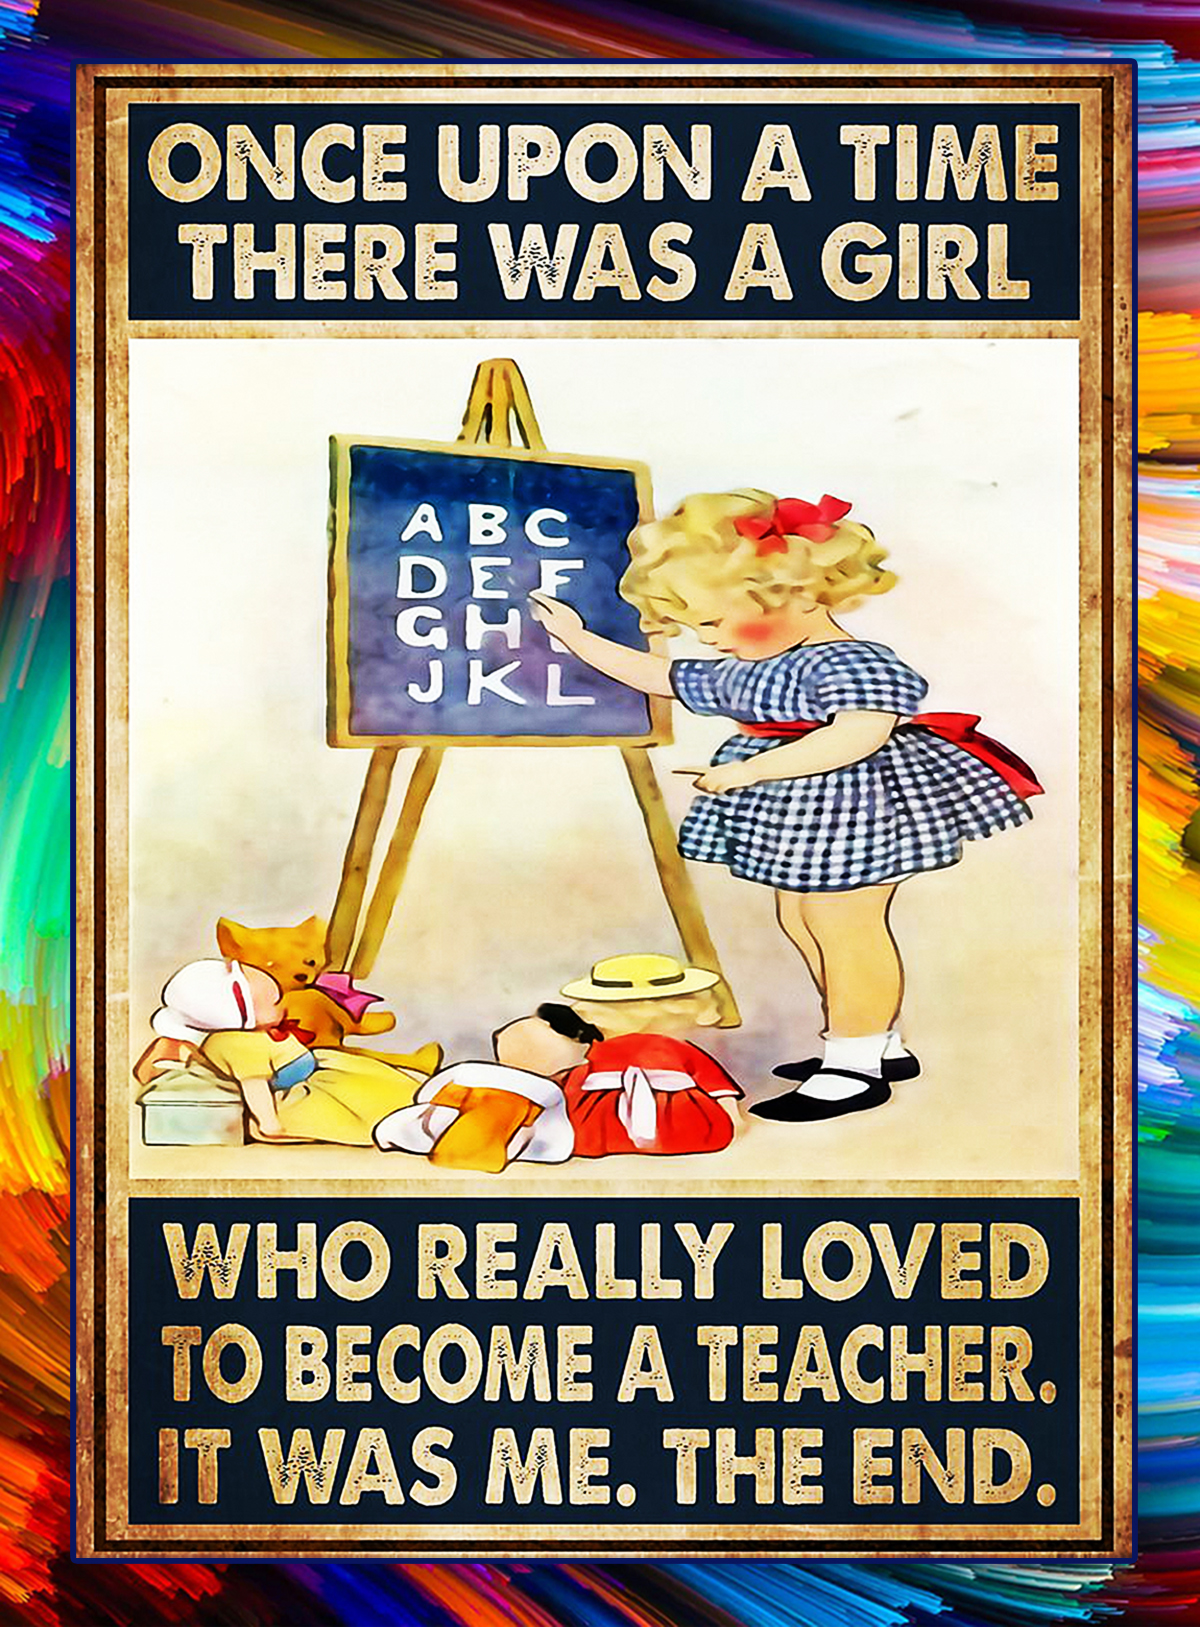 There was a girl who really loved to become a teacher poster - A1